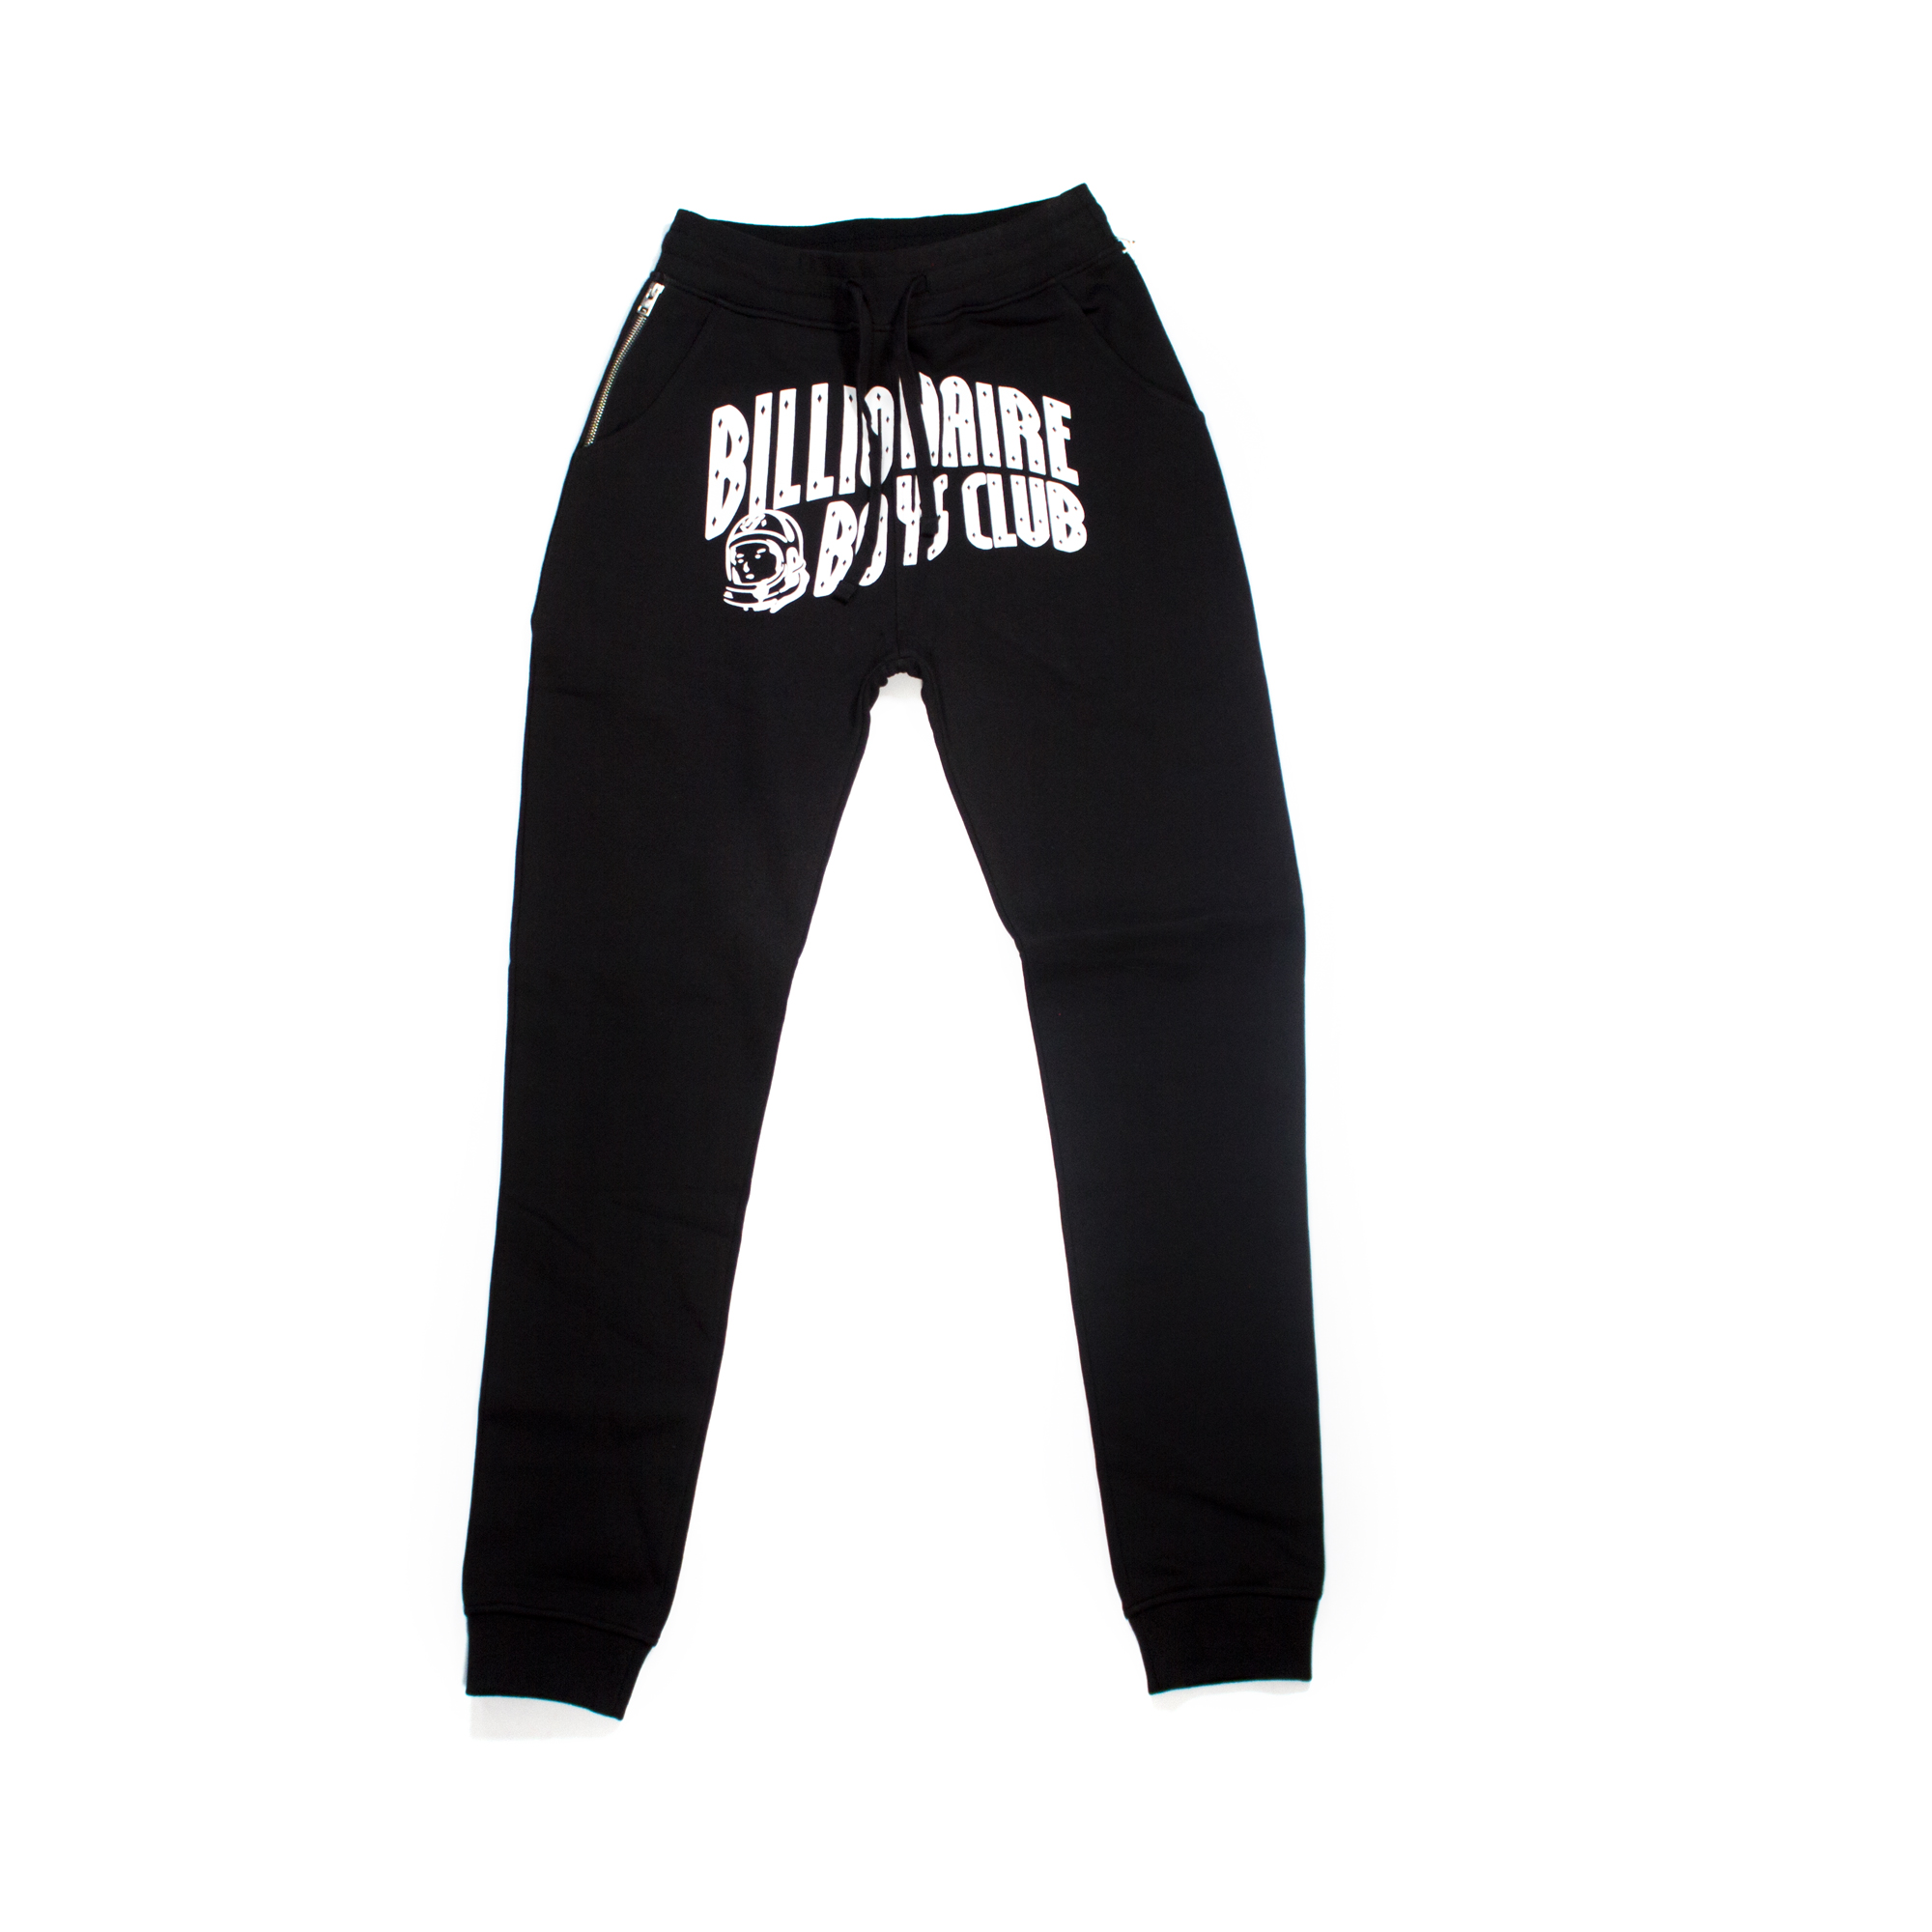 2f0742979 BBC fall 16 Arch logo sweatpants in red and black both available in-store  and online HERE #csws. Bianca_0002_Layer 5 Bianca_0004_Layer 3